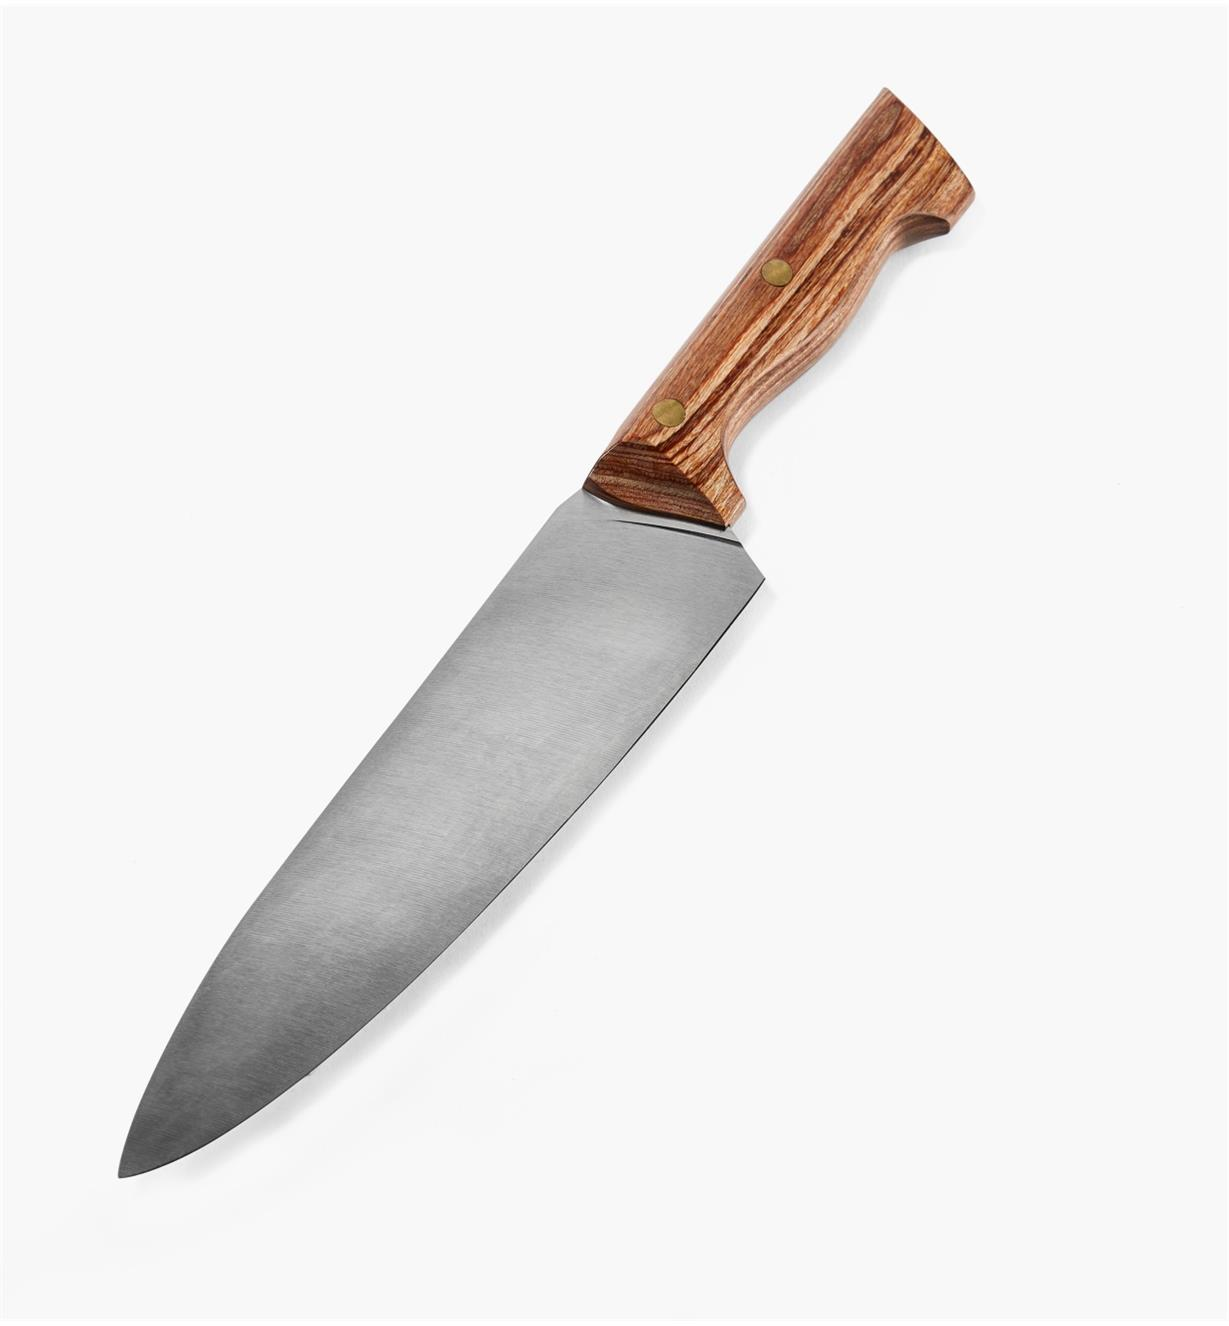 45K3647 - Large Chef's Knife